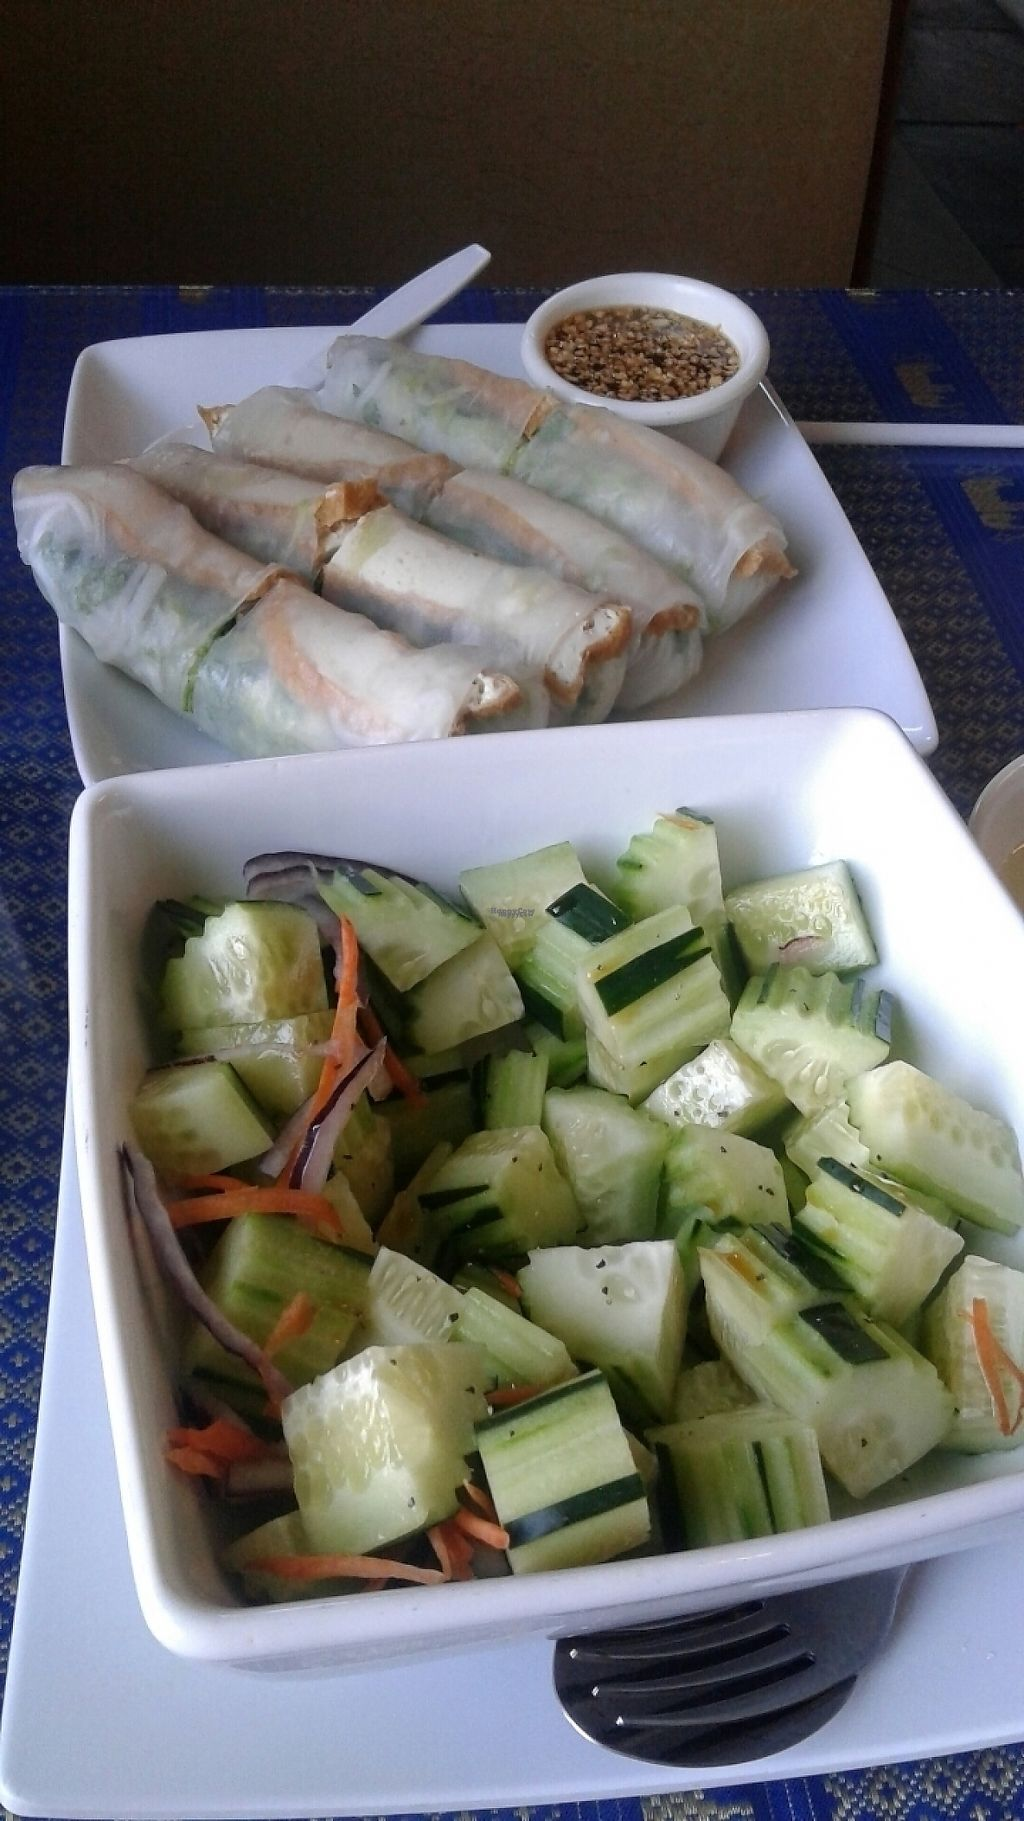 """Photo of Thai Cuisine II  by <a href=""""/members/profile/colettesynrise"""">colettesynrise</a> <br/>cucumber salad and crispy tofu spring rolls <br/> April 21, 2017  - <a href='/contact/abuse/image/90861/250709'>Report</a>"""